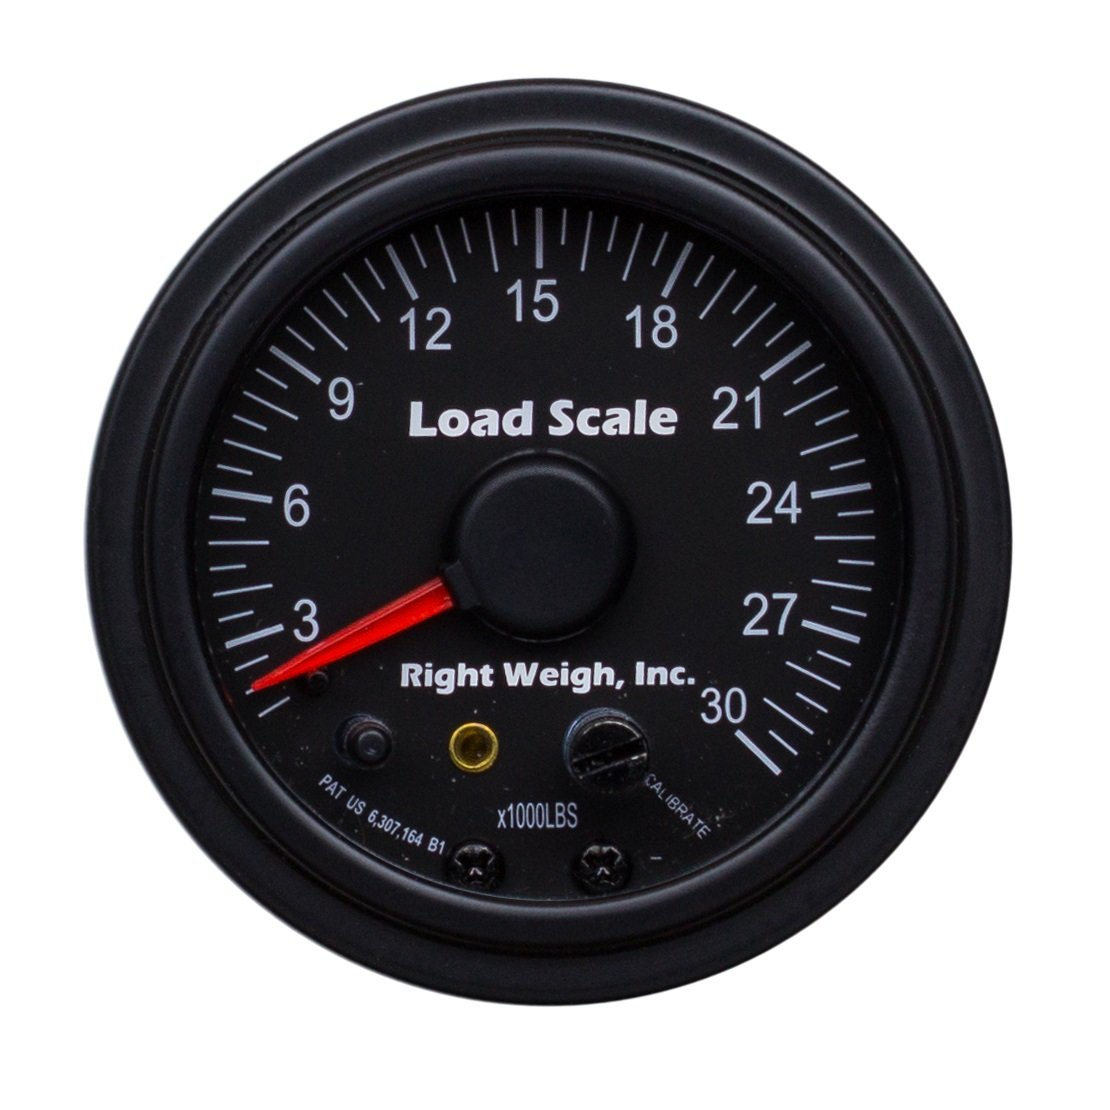 510-30-B Interior Analog Onboard Load Scale - for Single Axle Air Suspensions with One Height Control Valve - 7 Color LED by Right Weigh Load Scales